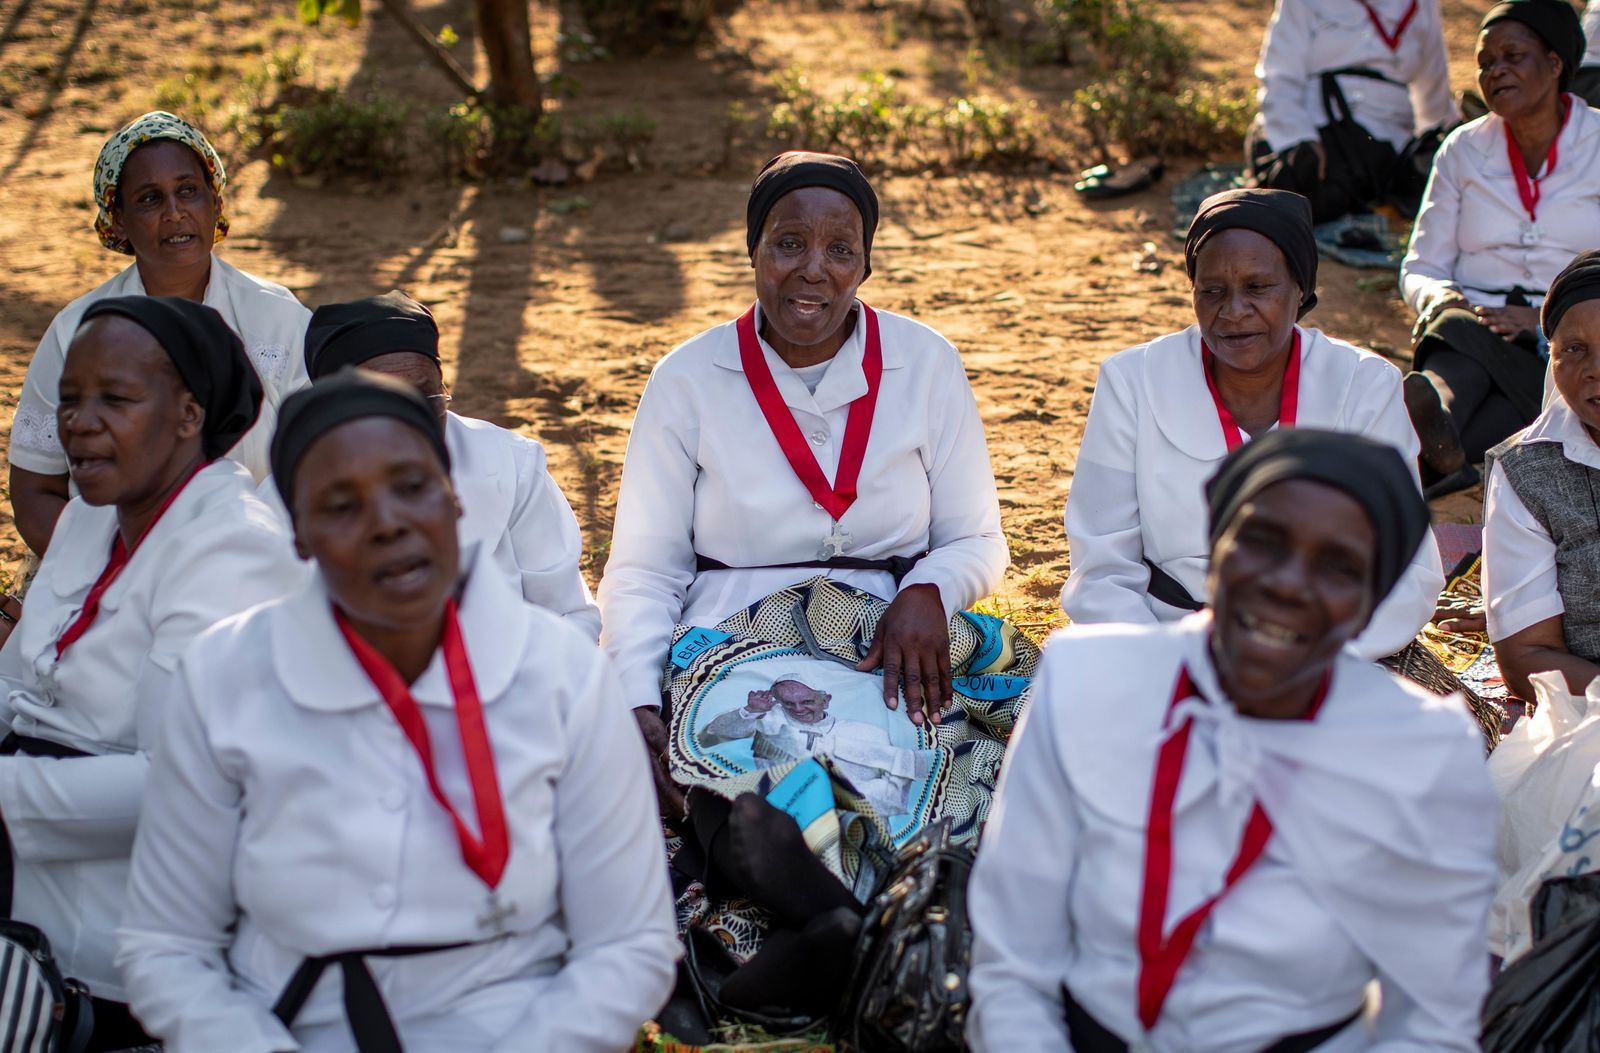 Women from different churches wait to see Pope Francis, ahead of his expected arrival near to the Apostolic Nunciature in the capital Maputo, Mozambique Wednesday, Sept. 4, 2019. Pope Francis is opening a three-nation pilgrimage to southern Africa with a strategic visit to Mozambique, just weeks after the country's ruling party and armed opposition signed a new peace deal and weeks before national elections. (AP Photo/Ben Curtis)